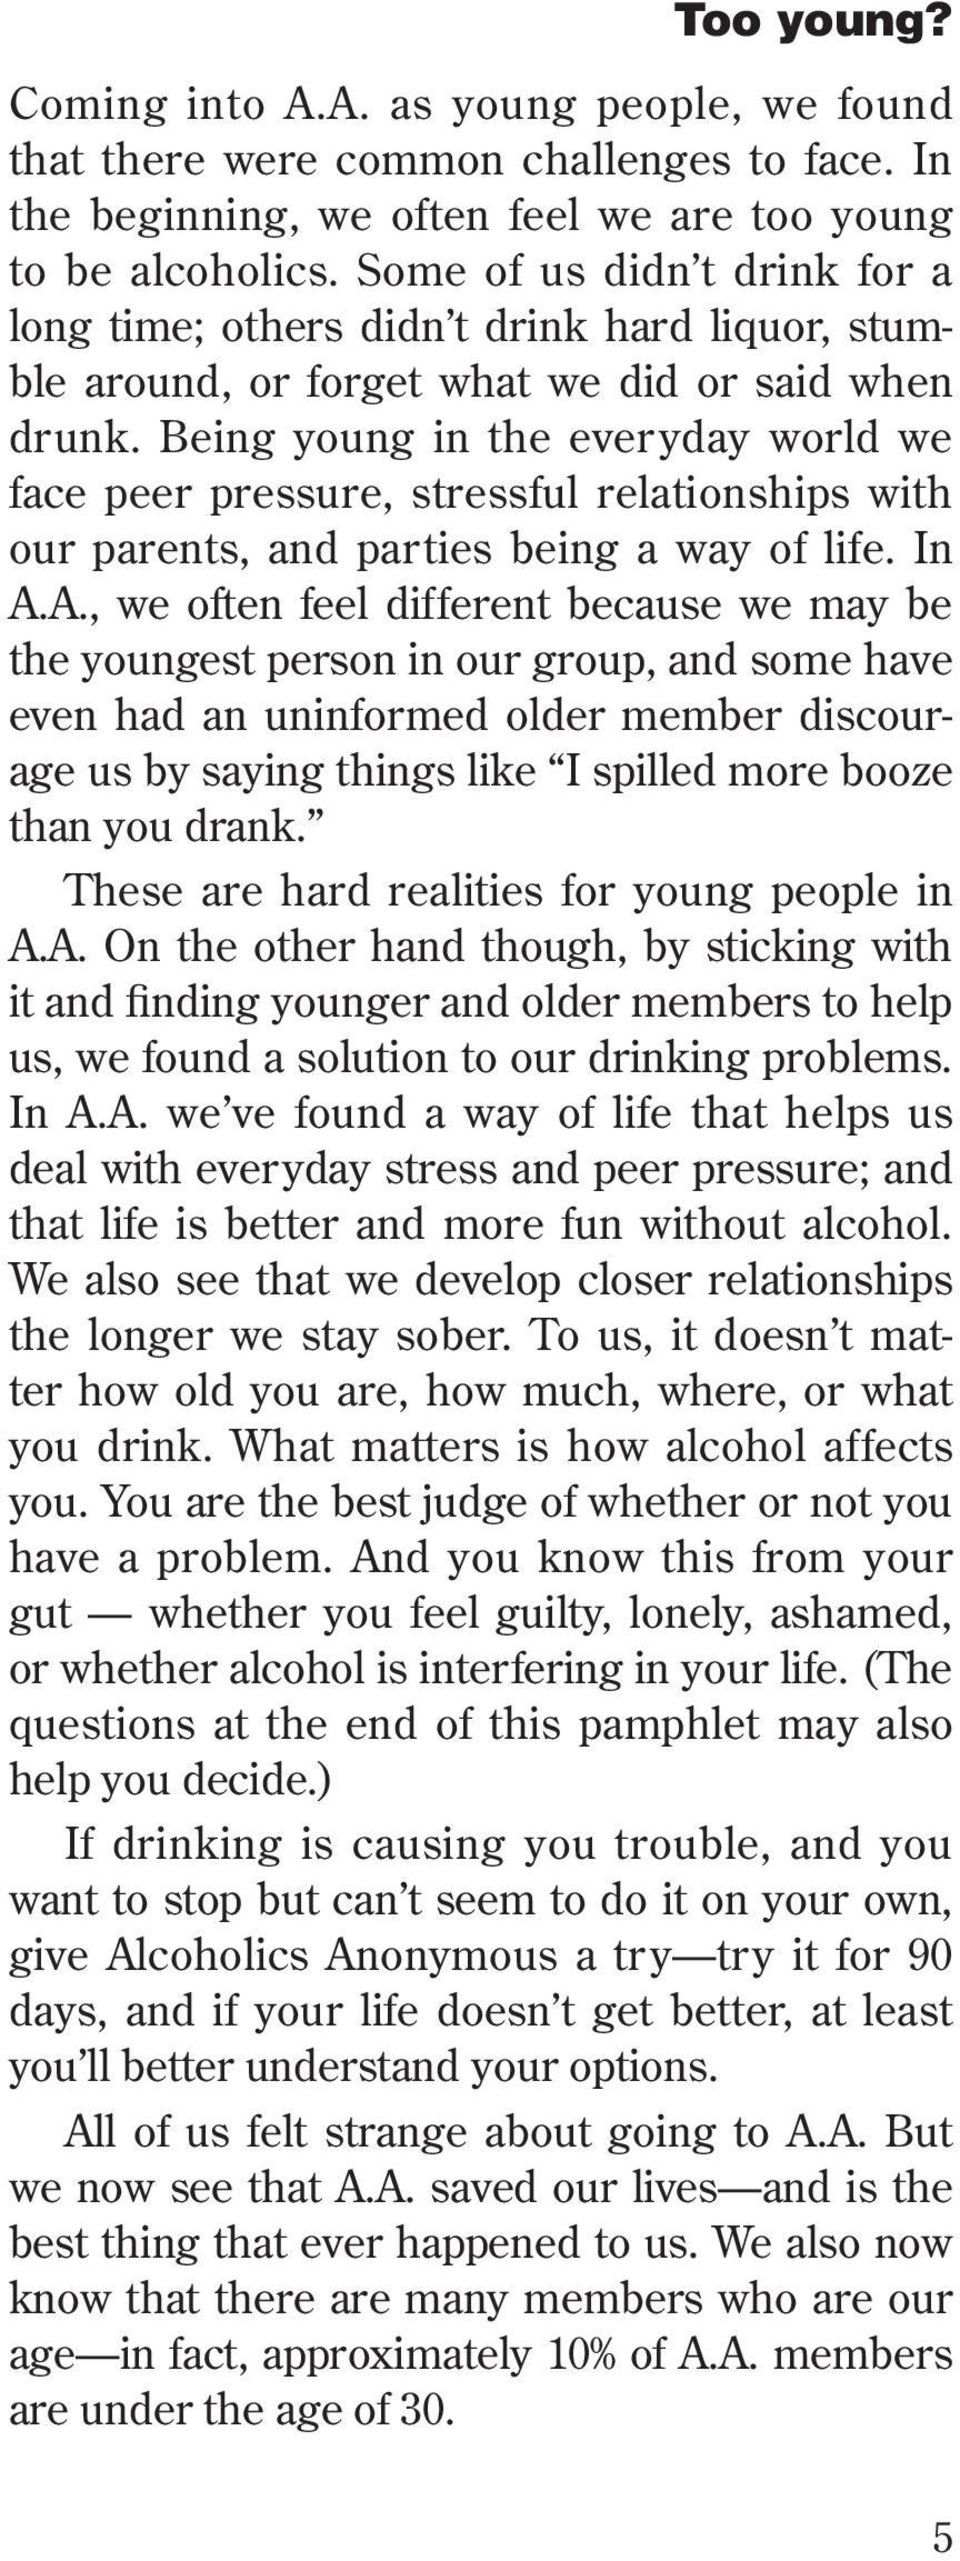 Being young in the everyday world we face peer pressure, stressful relationships with our parents, and parties being a way of life. In A.